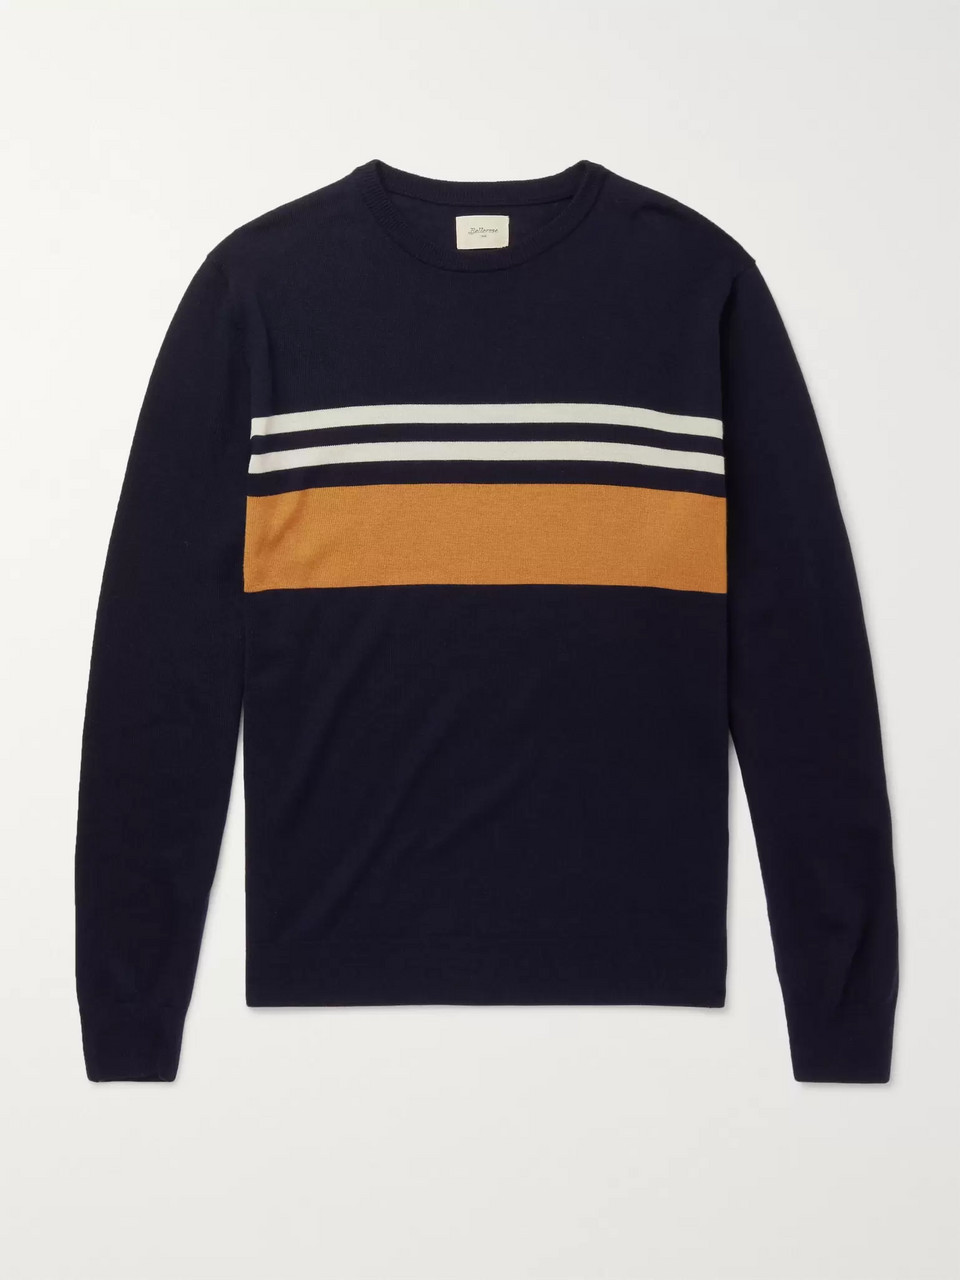 Bellerose Slim-Fit Striped Merino Wool Sweater